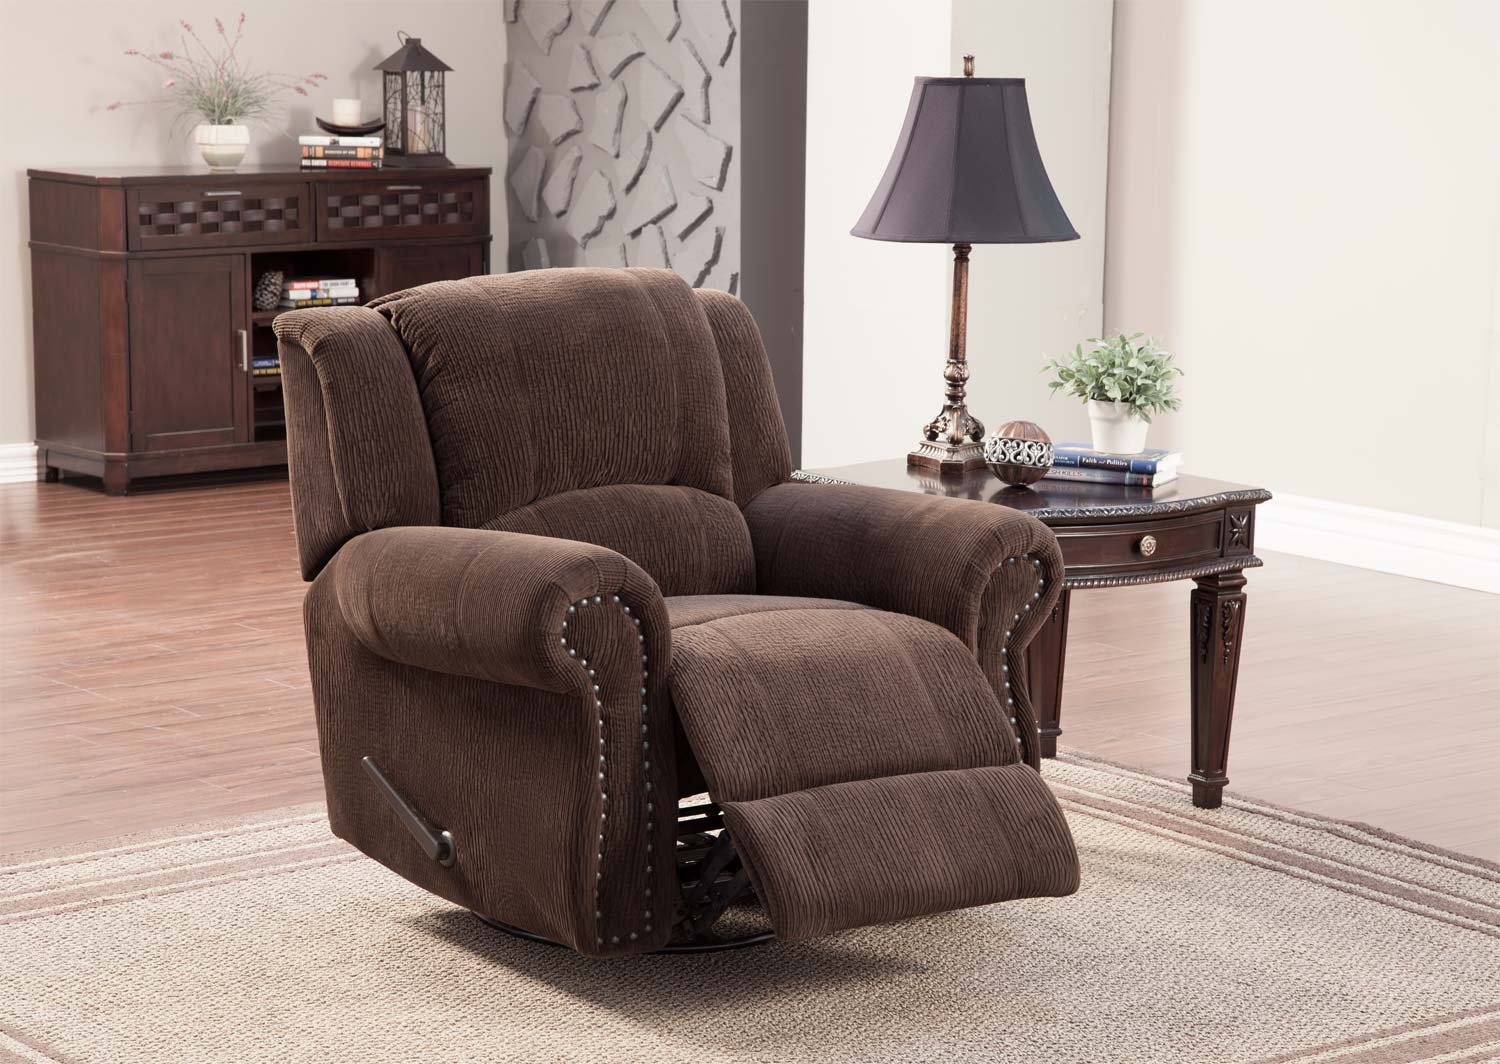 https://www.homelegancefurnitureonline.com/images/HE-9708NF-1.jpg